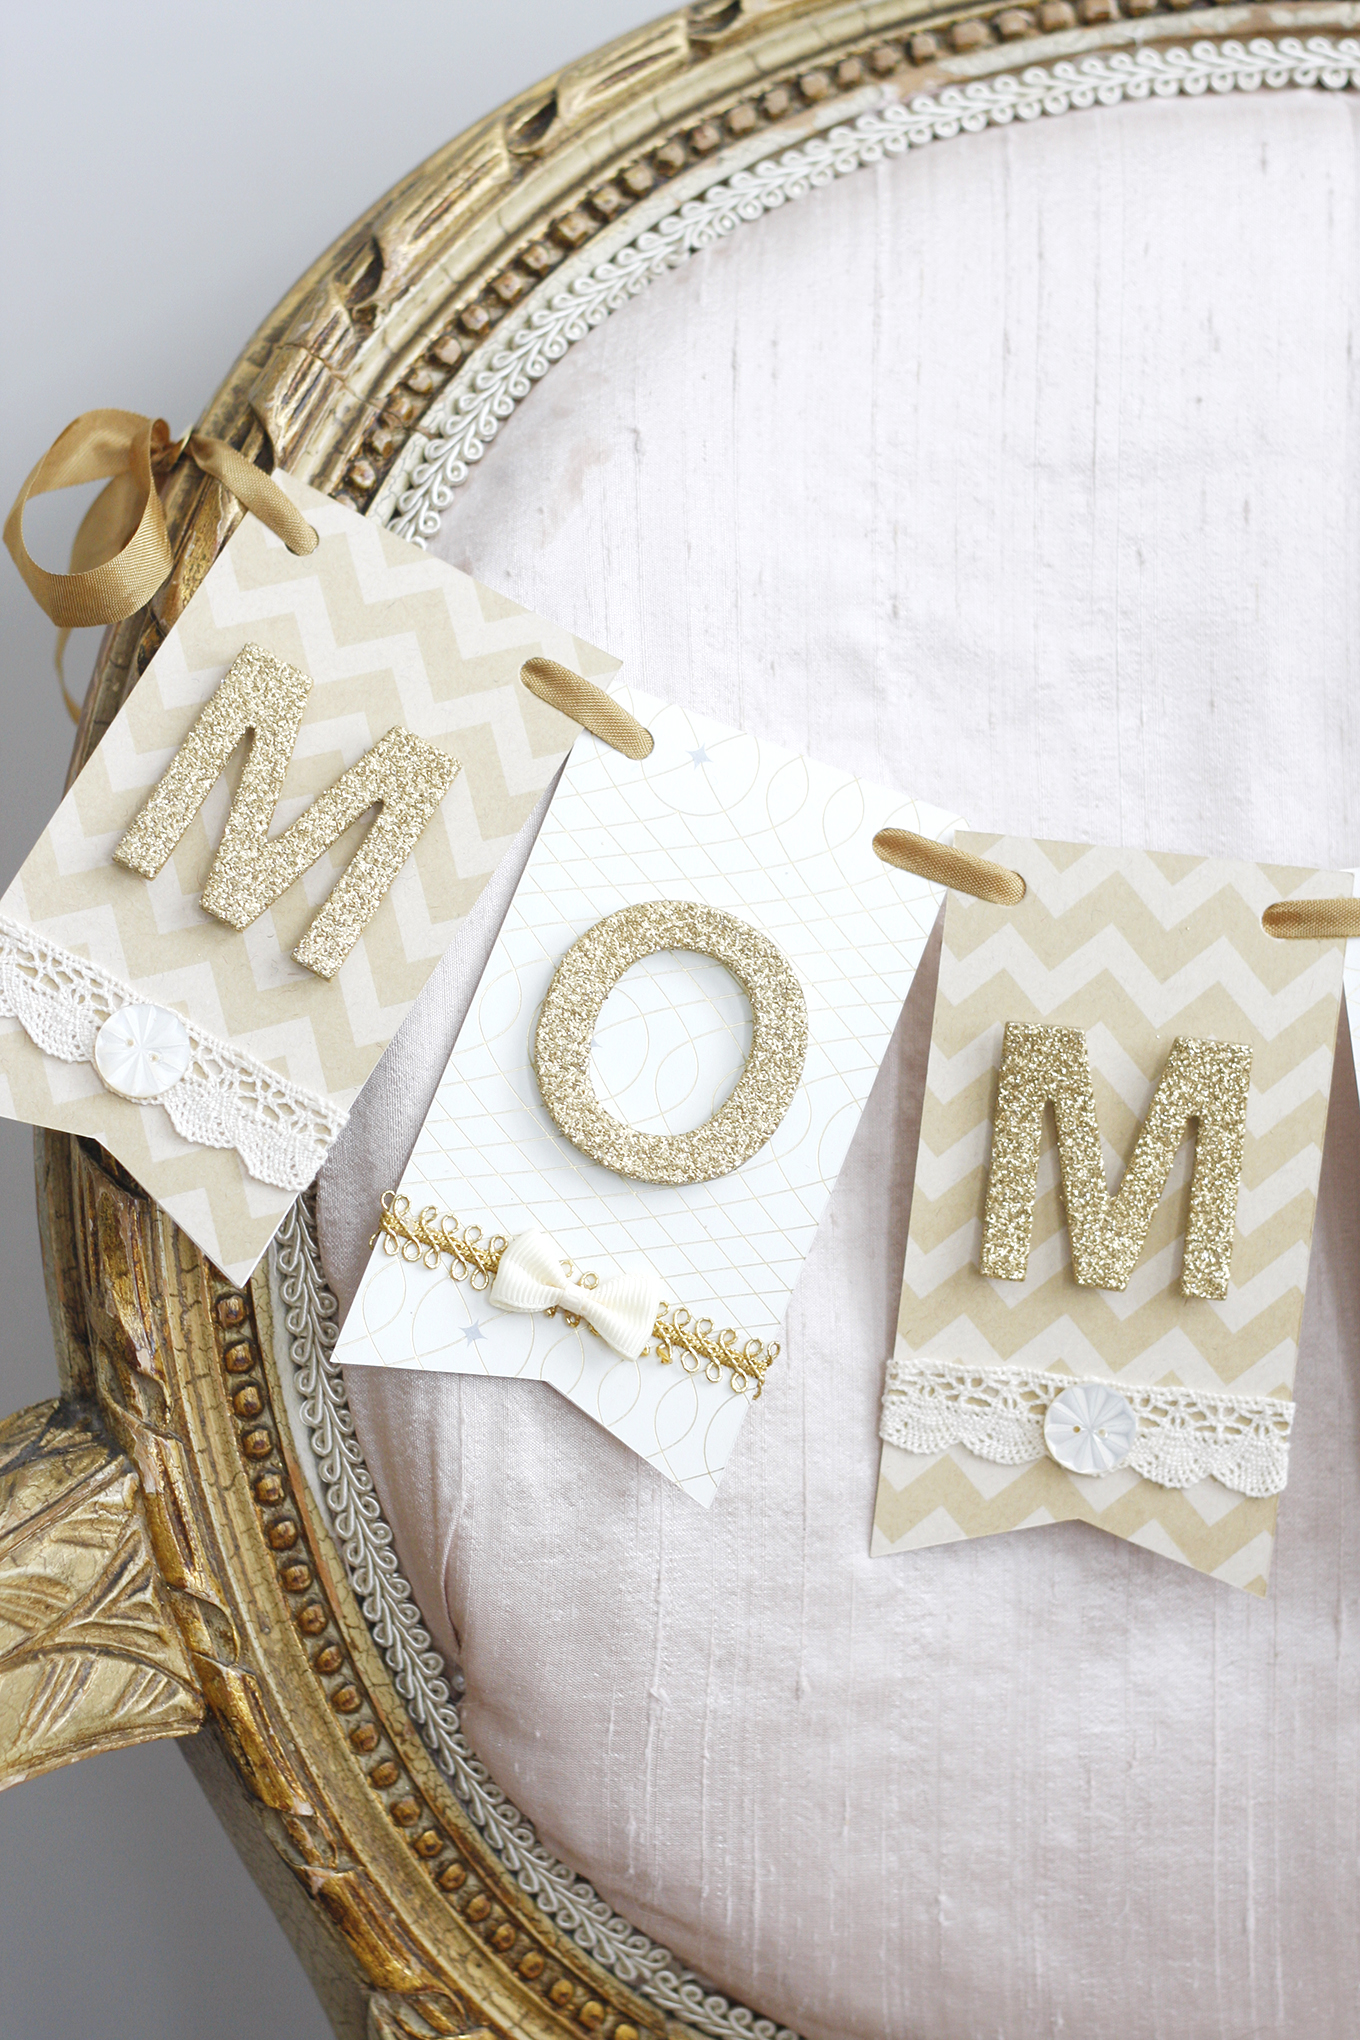 04_Paige Smith_Baby Shower_Mom to Be Chair Banner Decor